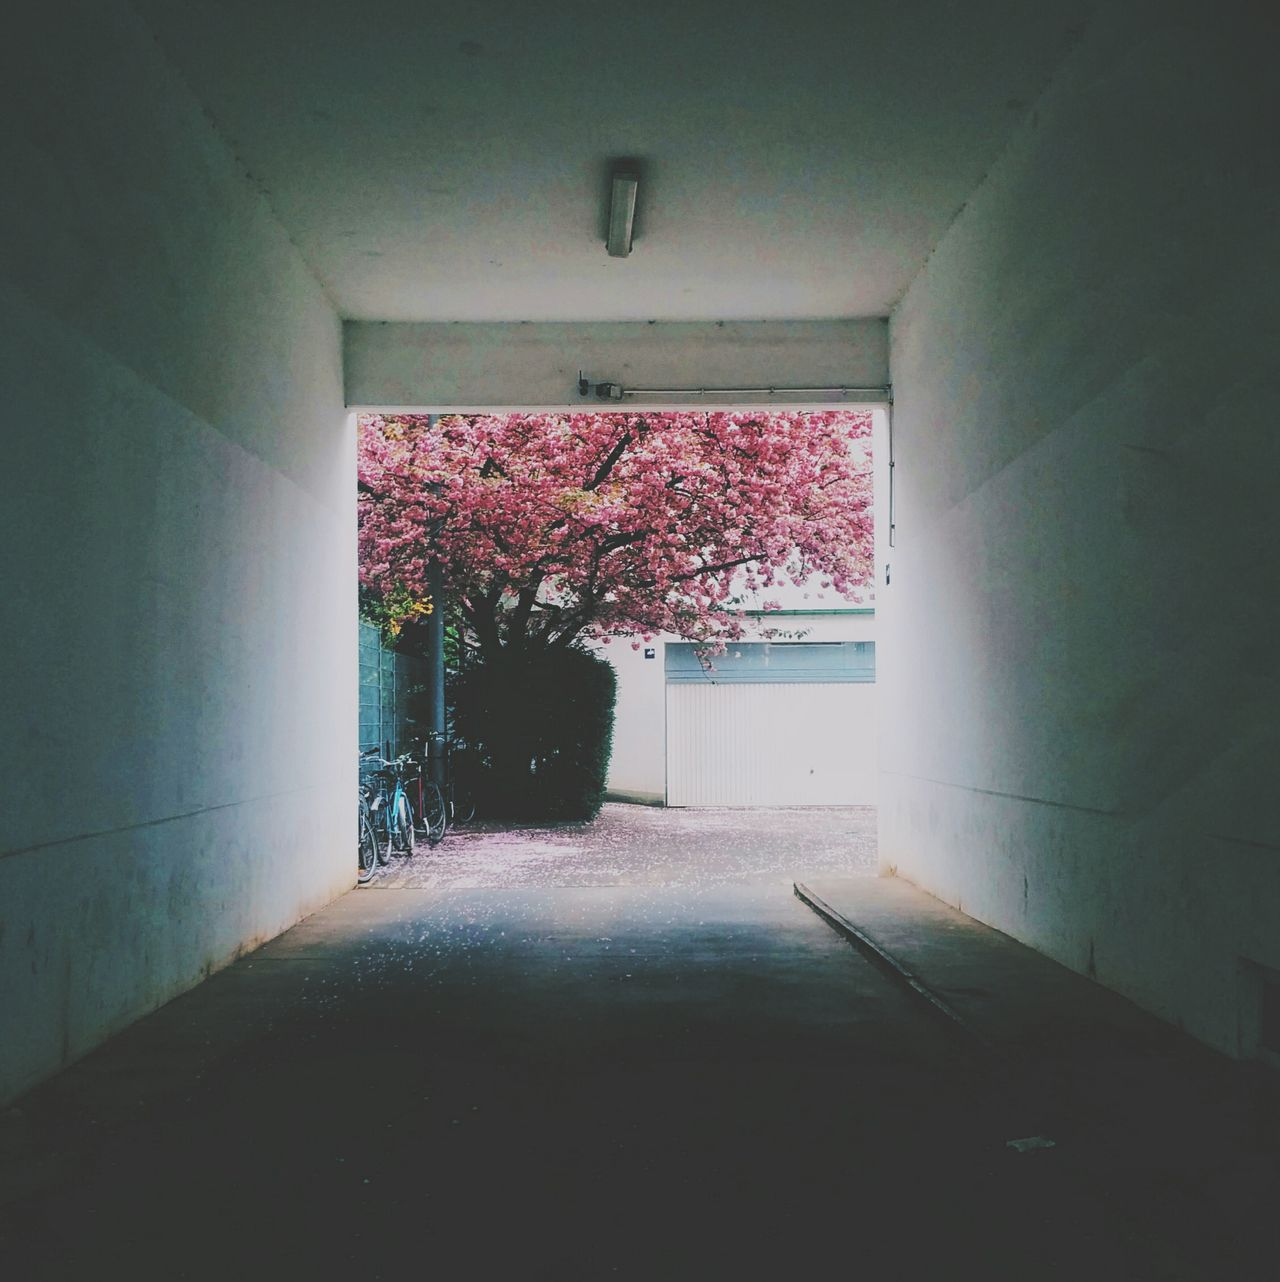 Blooming tree through building archway